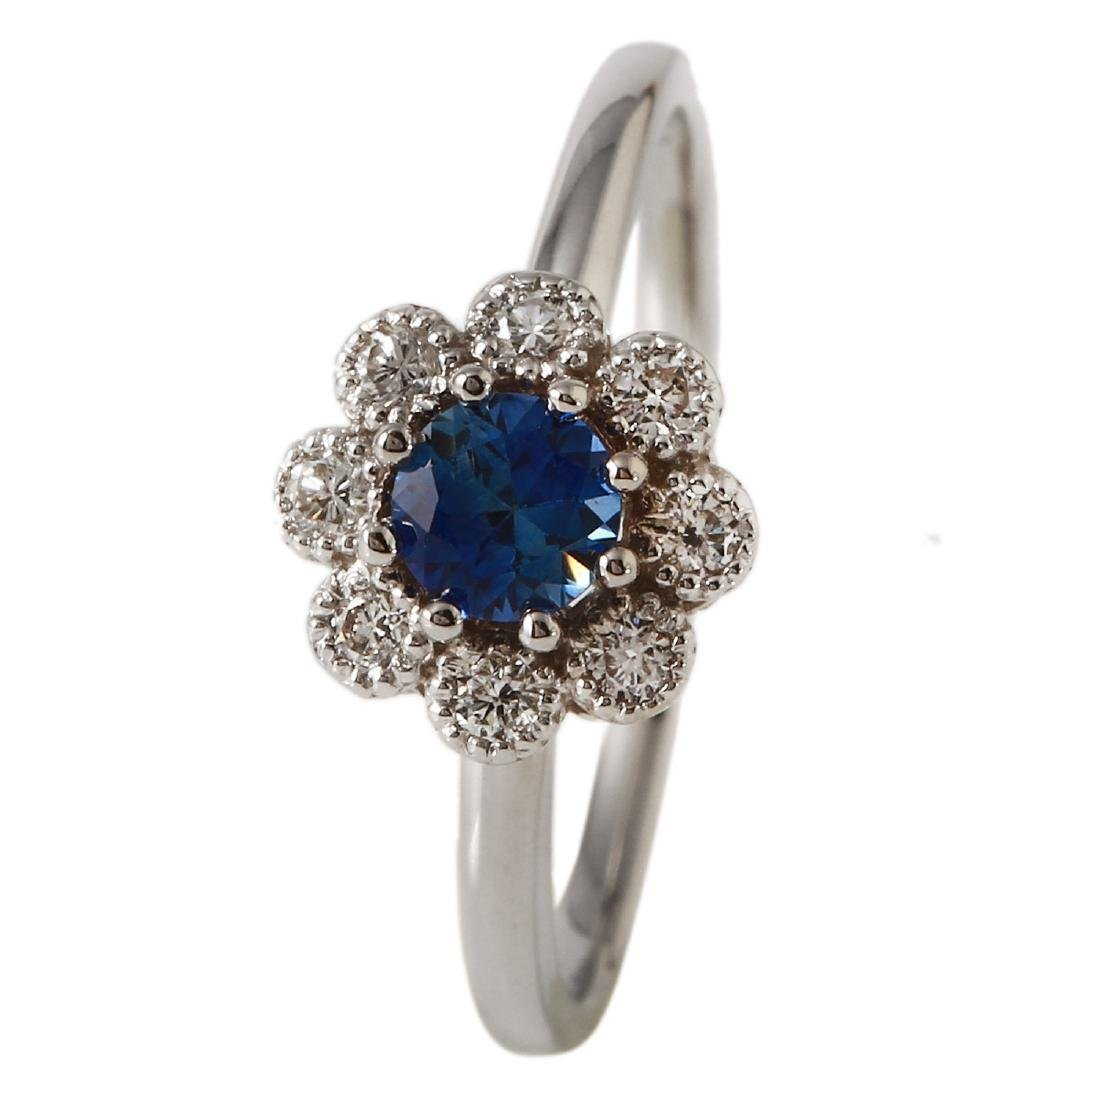 0.52 Carat Natural Sapphire 18K Solid White Gold